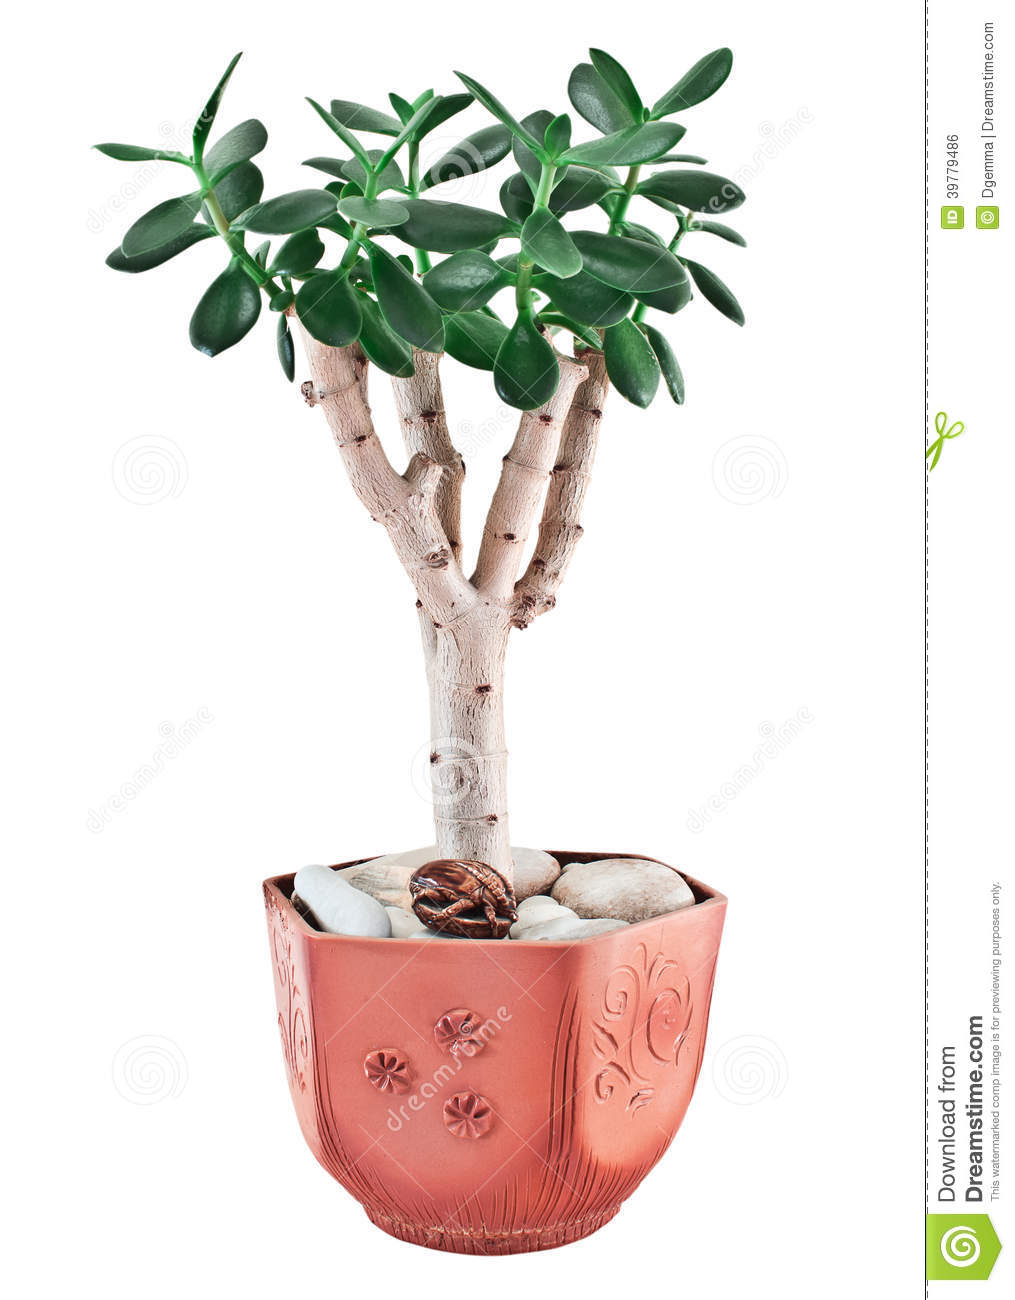 Crassula Ovata Or Jade Plant In Flower Pot Stock Photo.